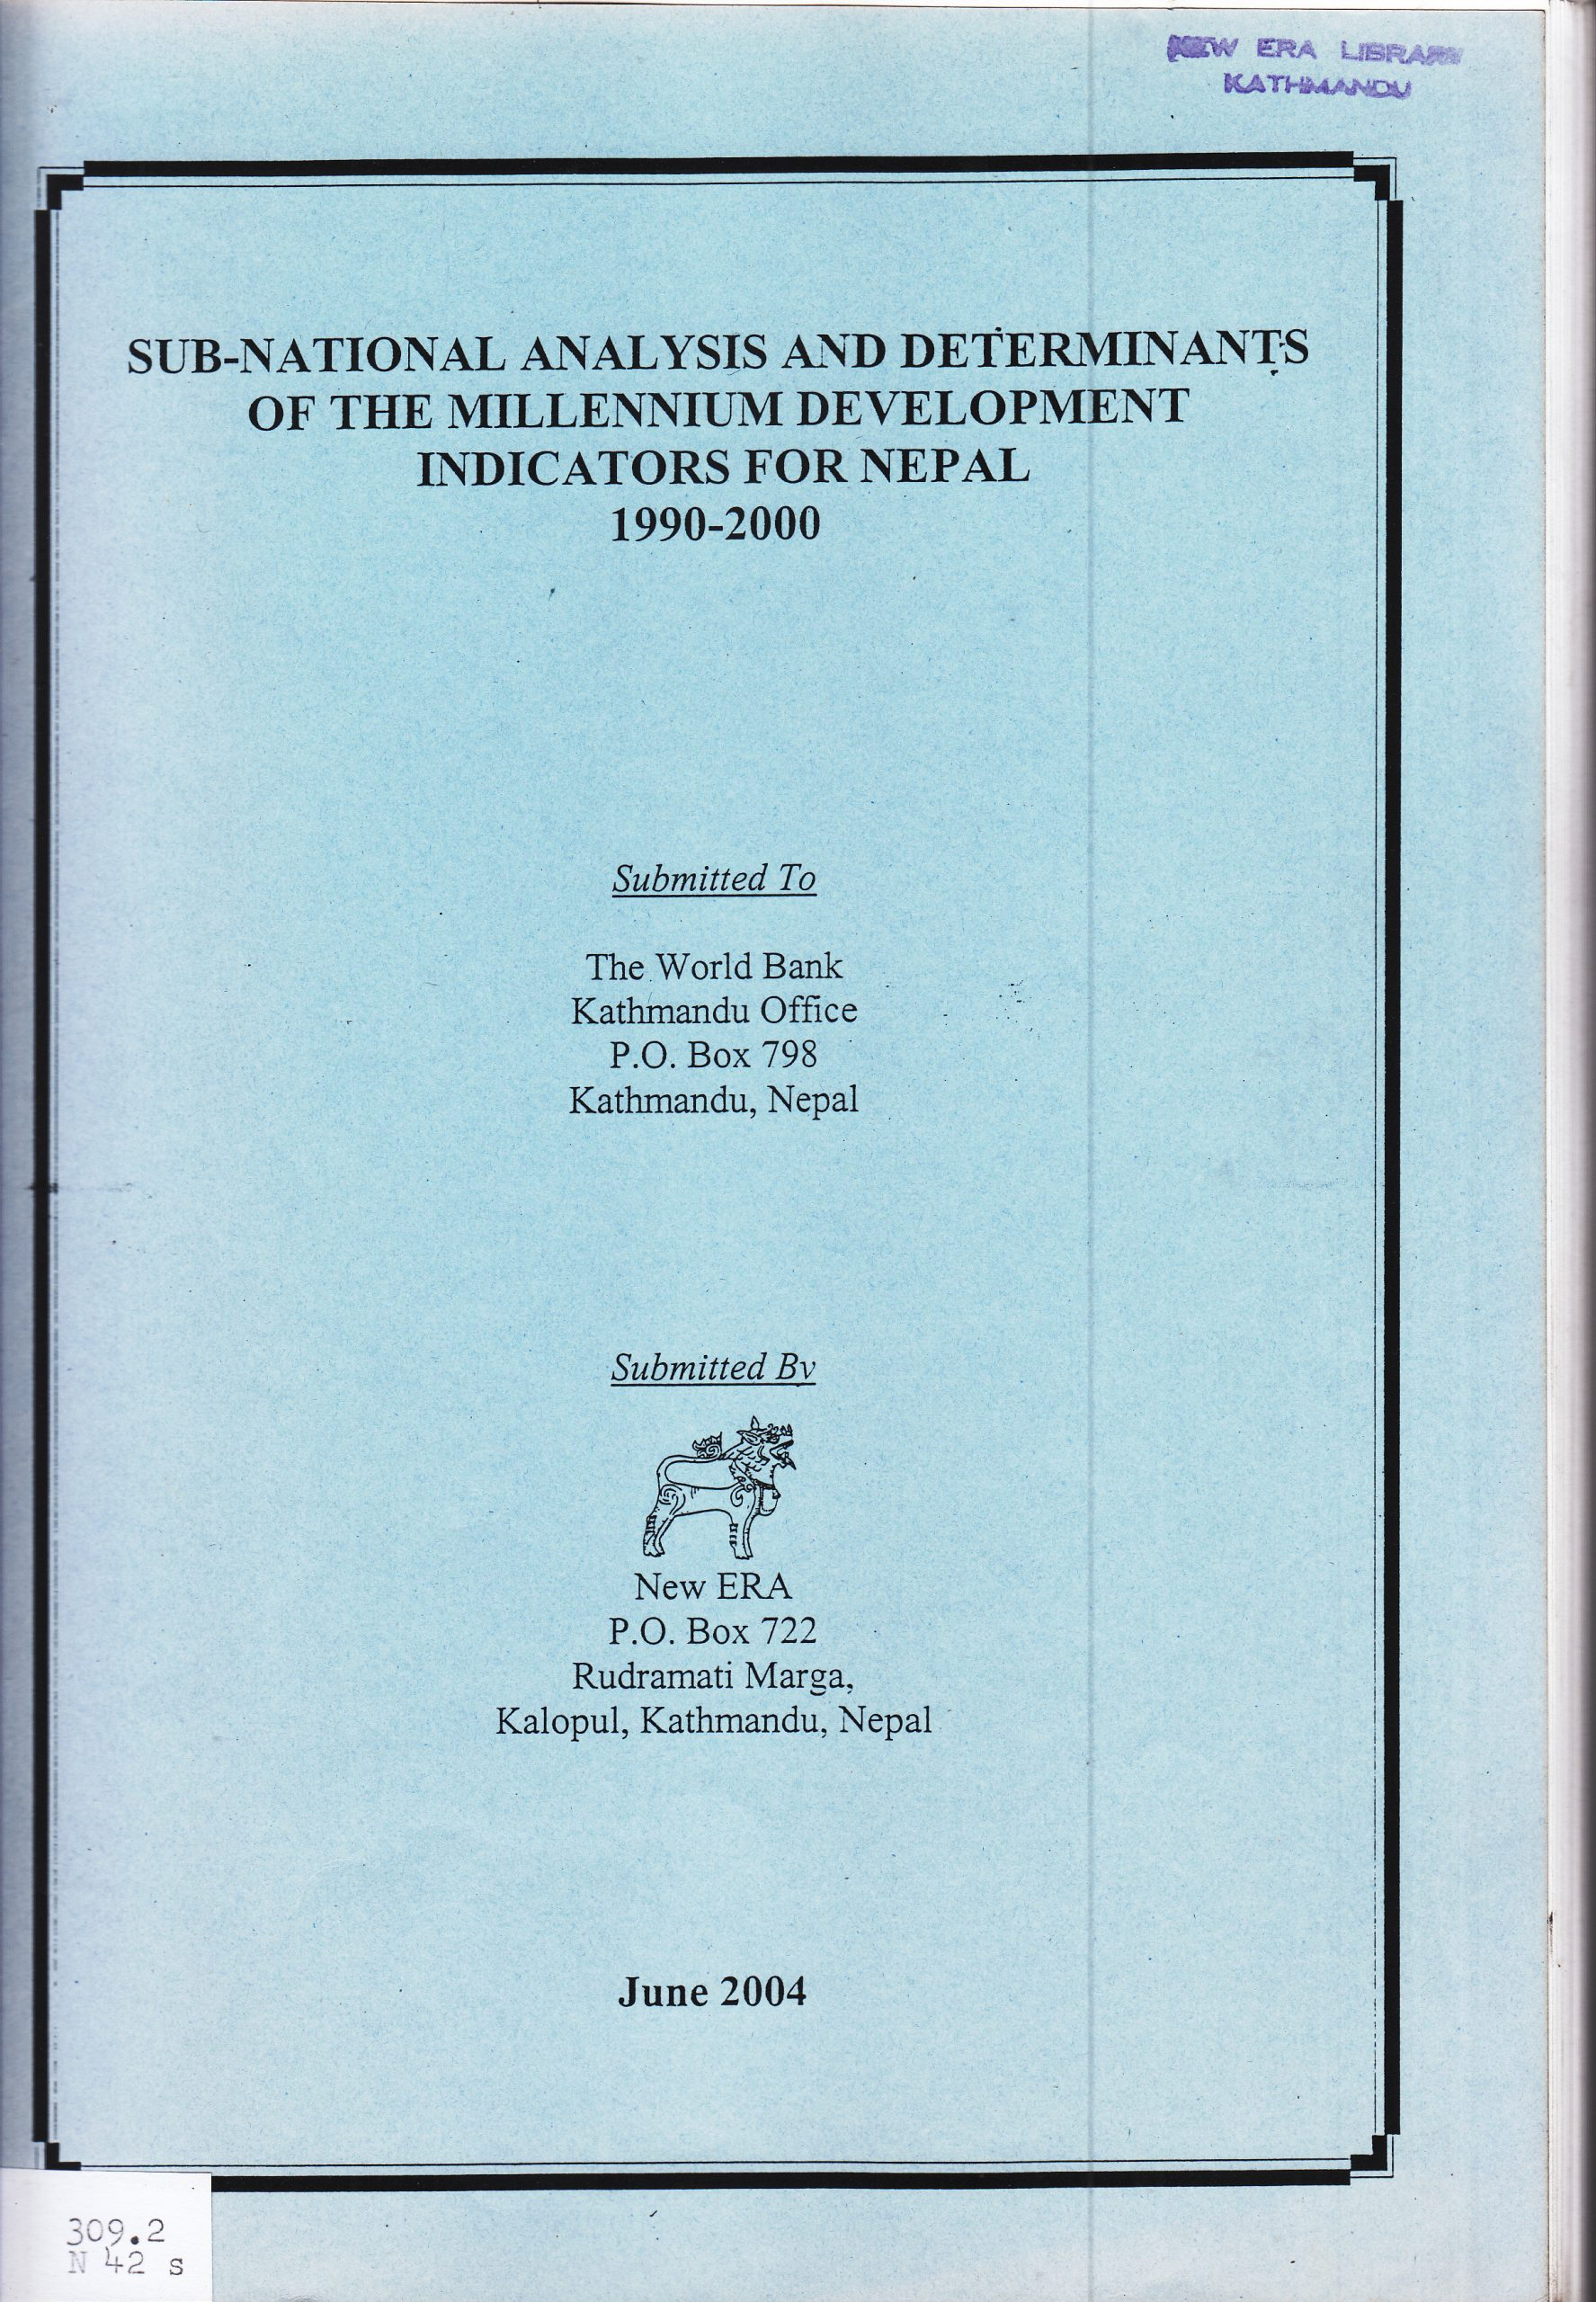 Sub-National Analysis and Determinants of the Millennium Development Indicators for Nepal 1990 – 2000